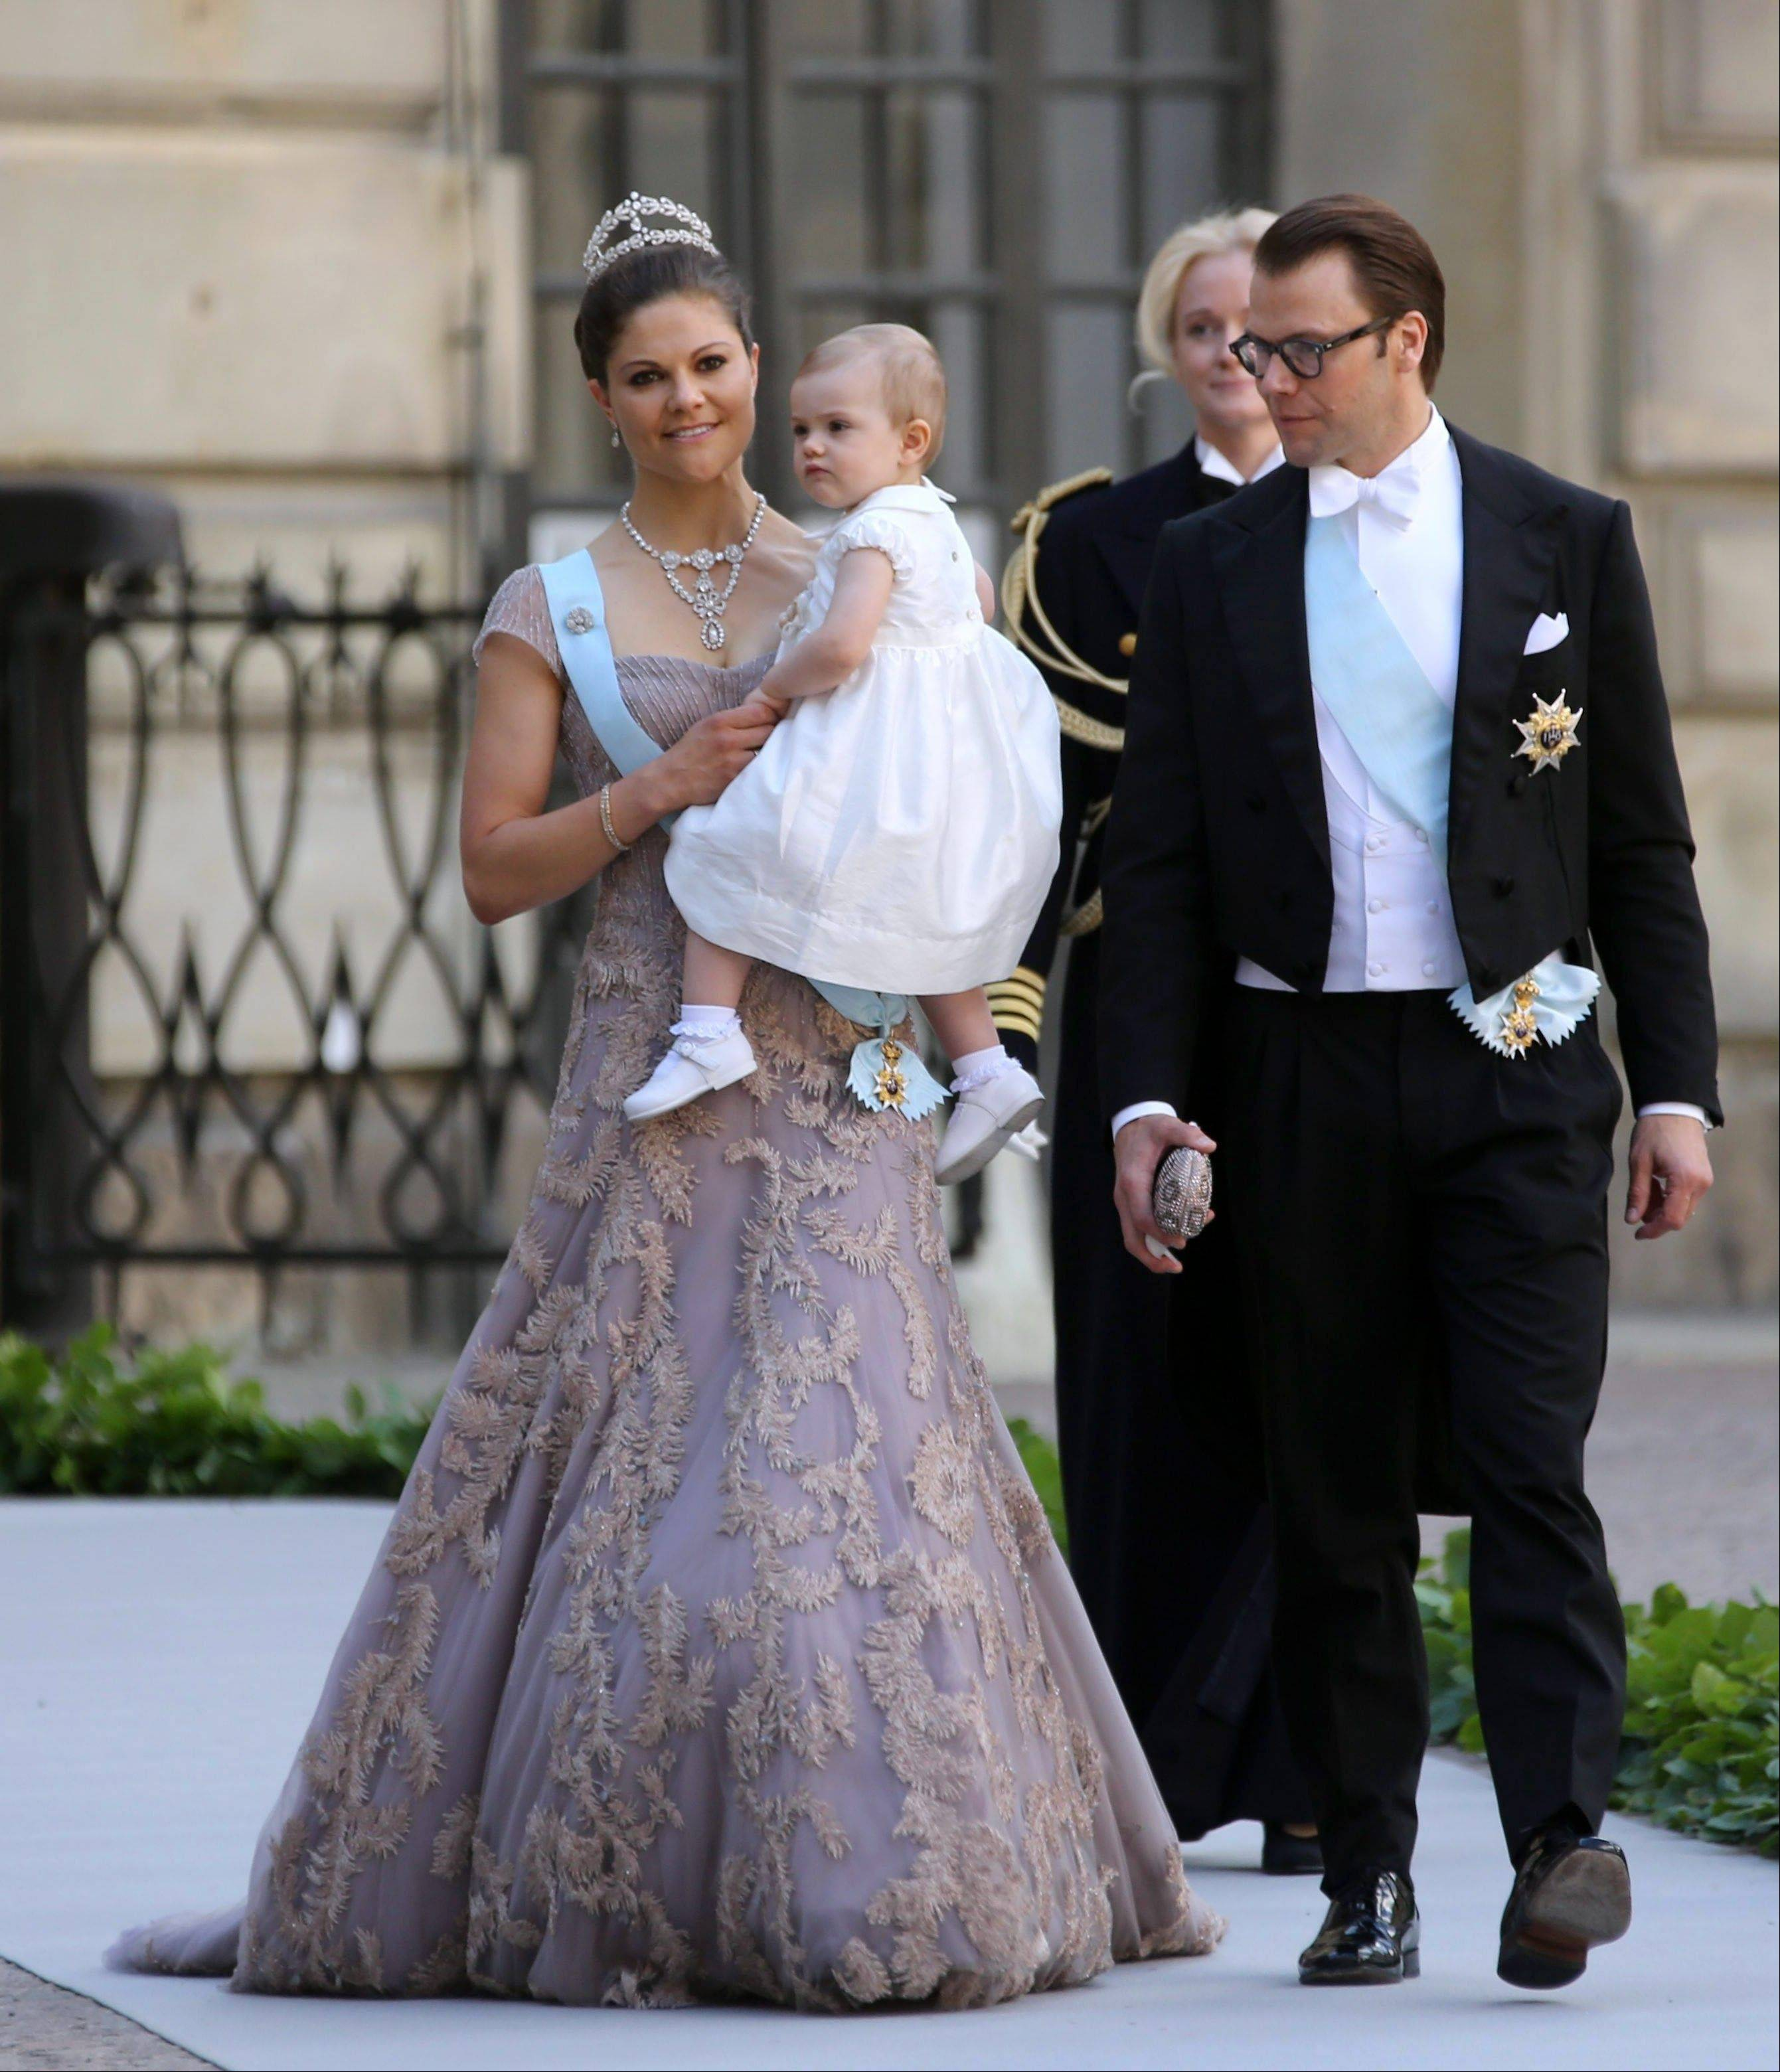 Crown Princess Victoria, Princess Estelle and Prince Daniel of Sweden arrives to the Royal Chapel before the wedding of Sweden's Princess Madeleine and New York banker Christopher O'Neill, in Stockholm Saturday June 8.